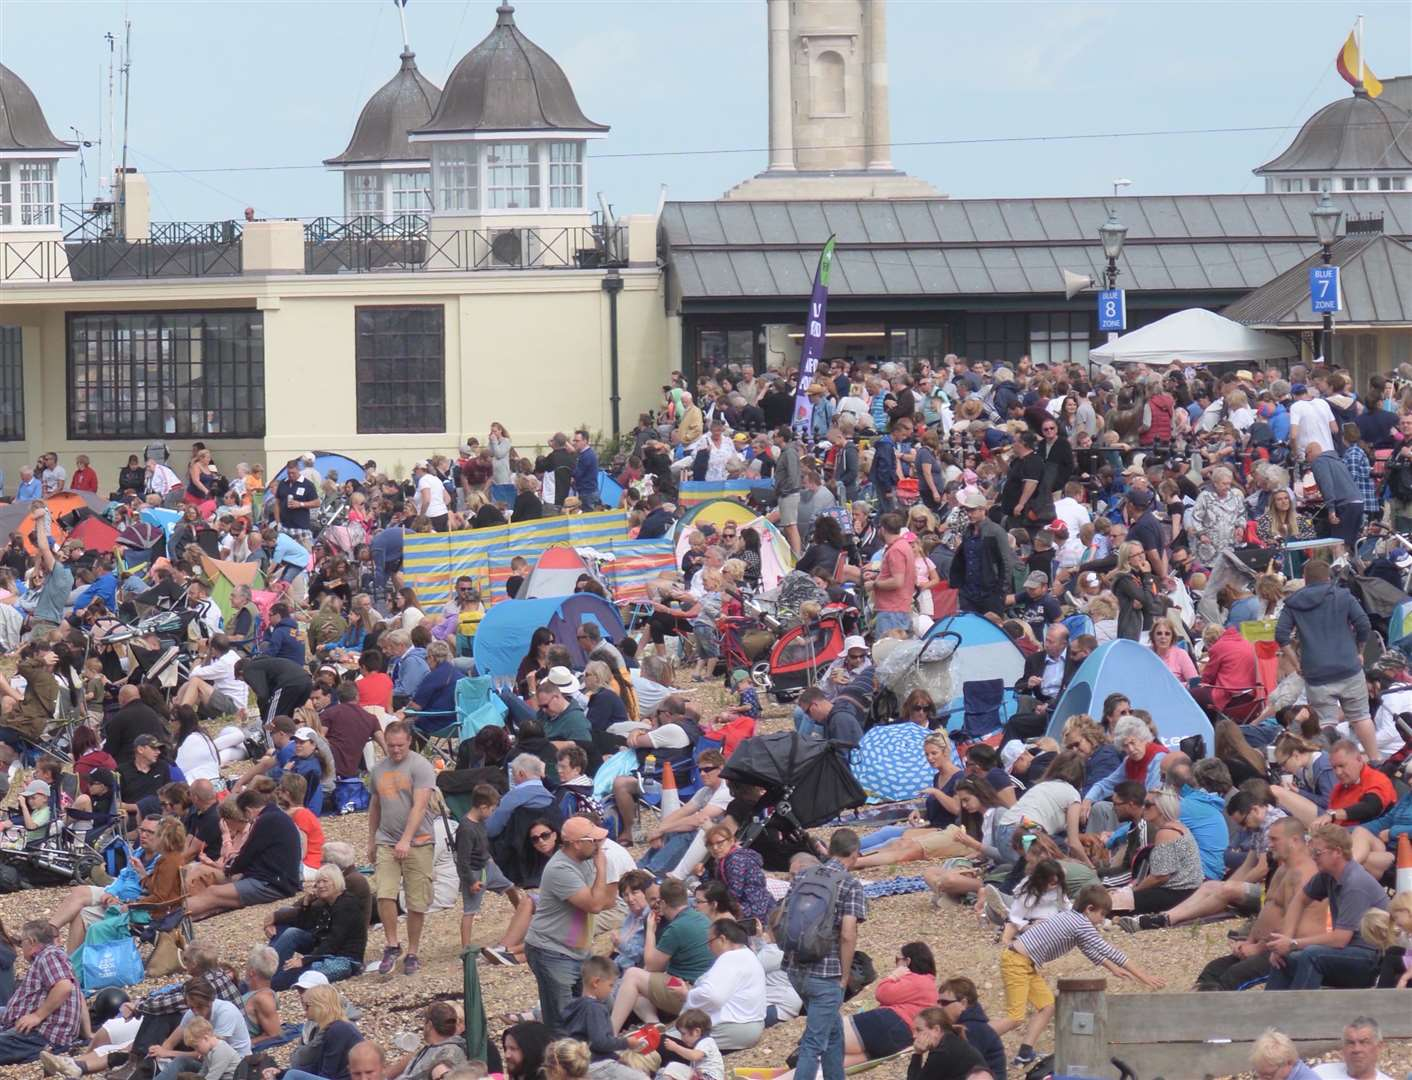 The air show's attract thousands to Herne Bay